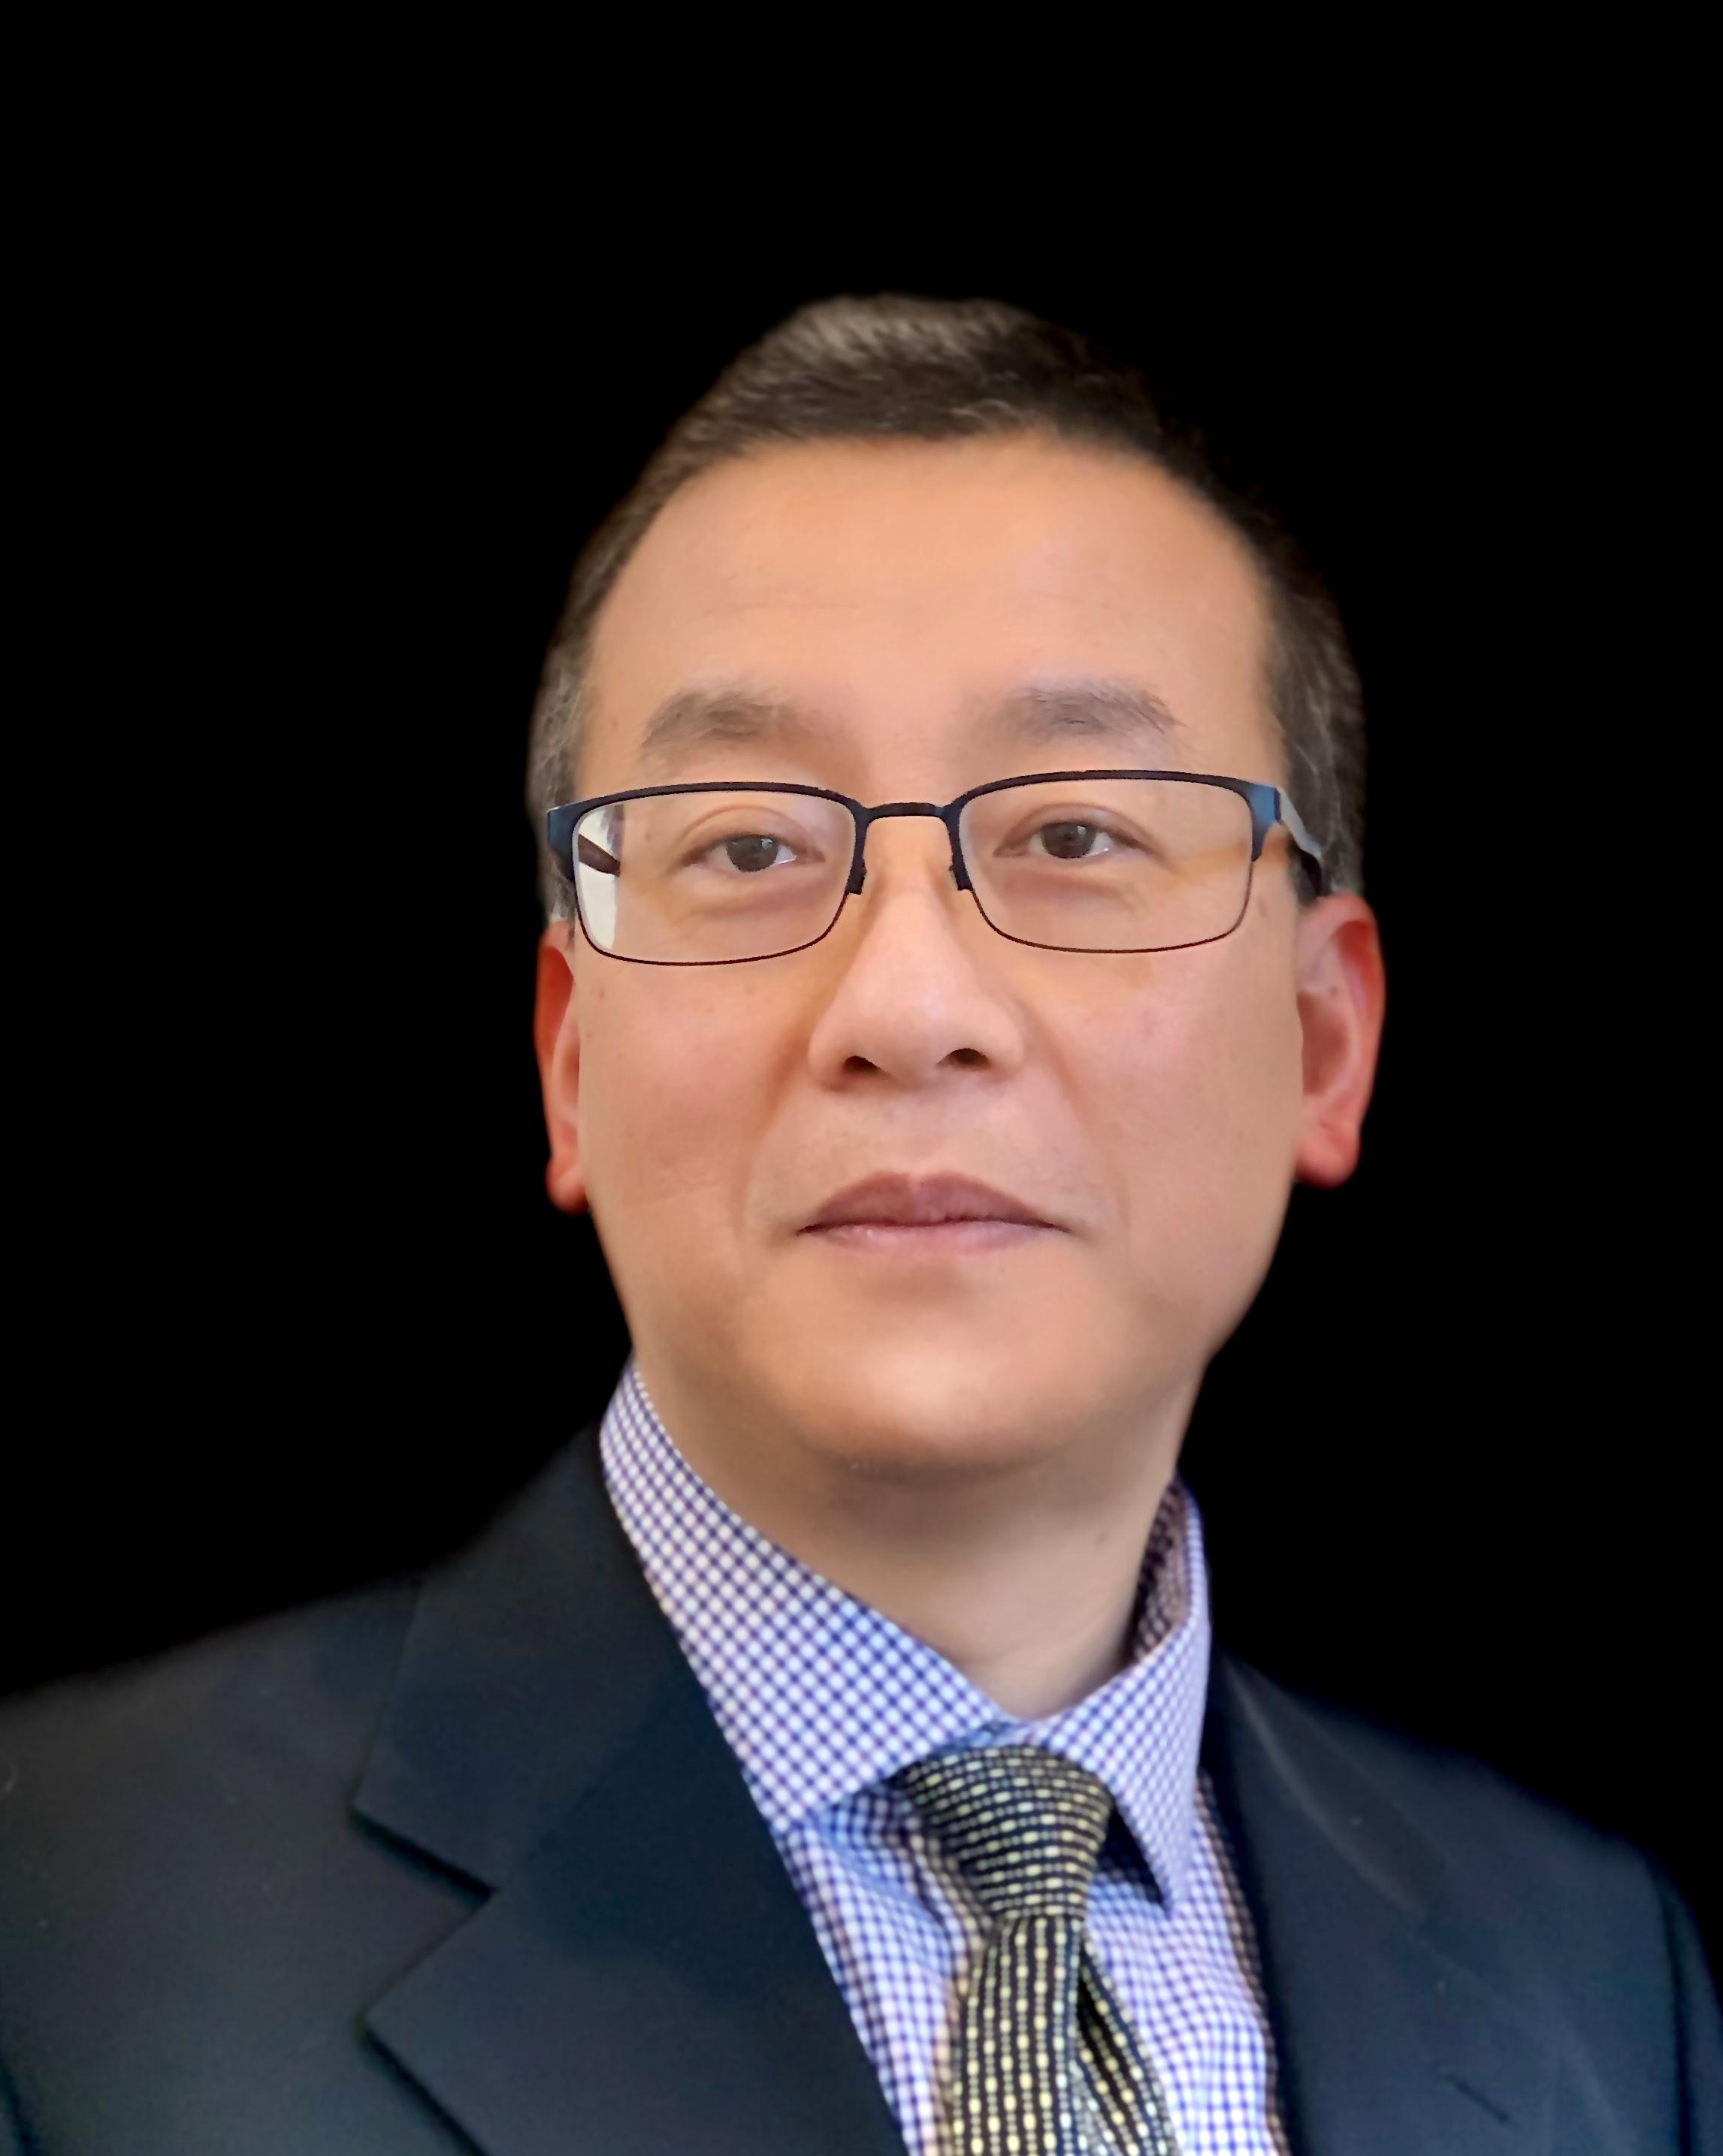 WEI CHENG Financial Professional & Insurance Agent